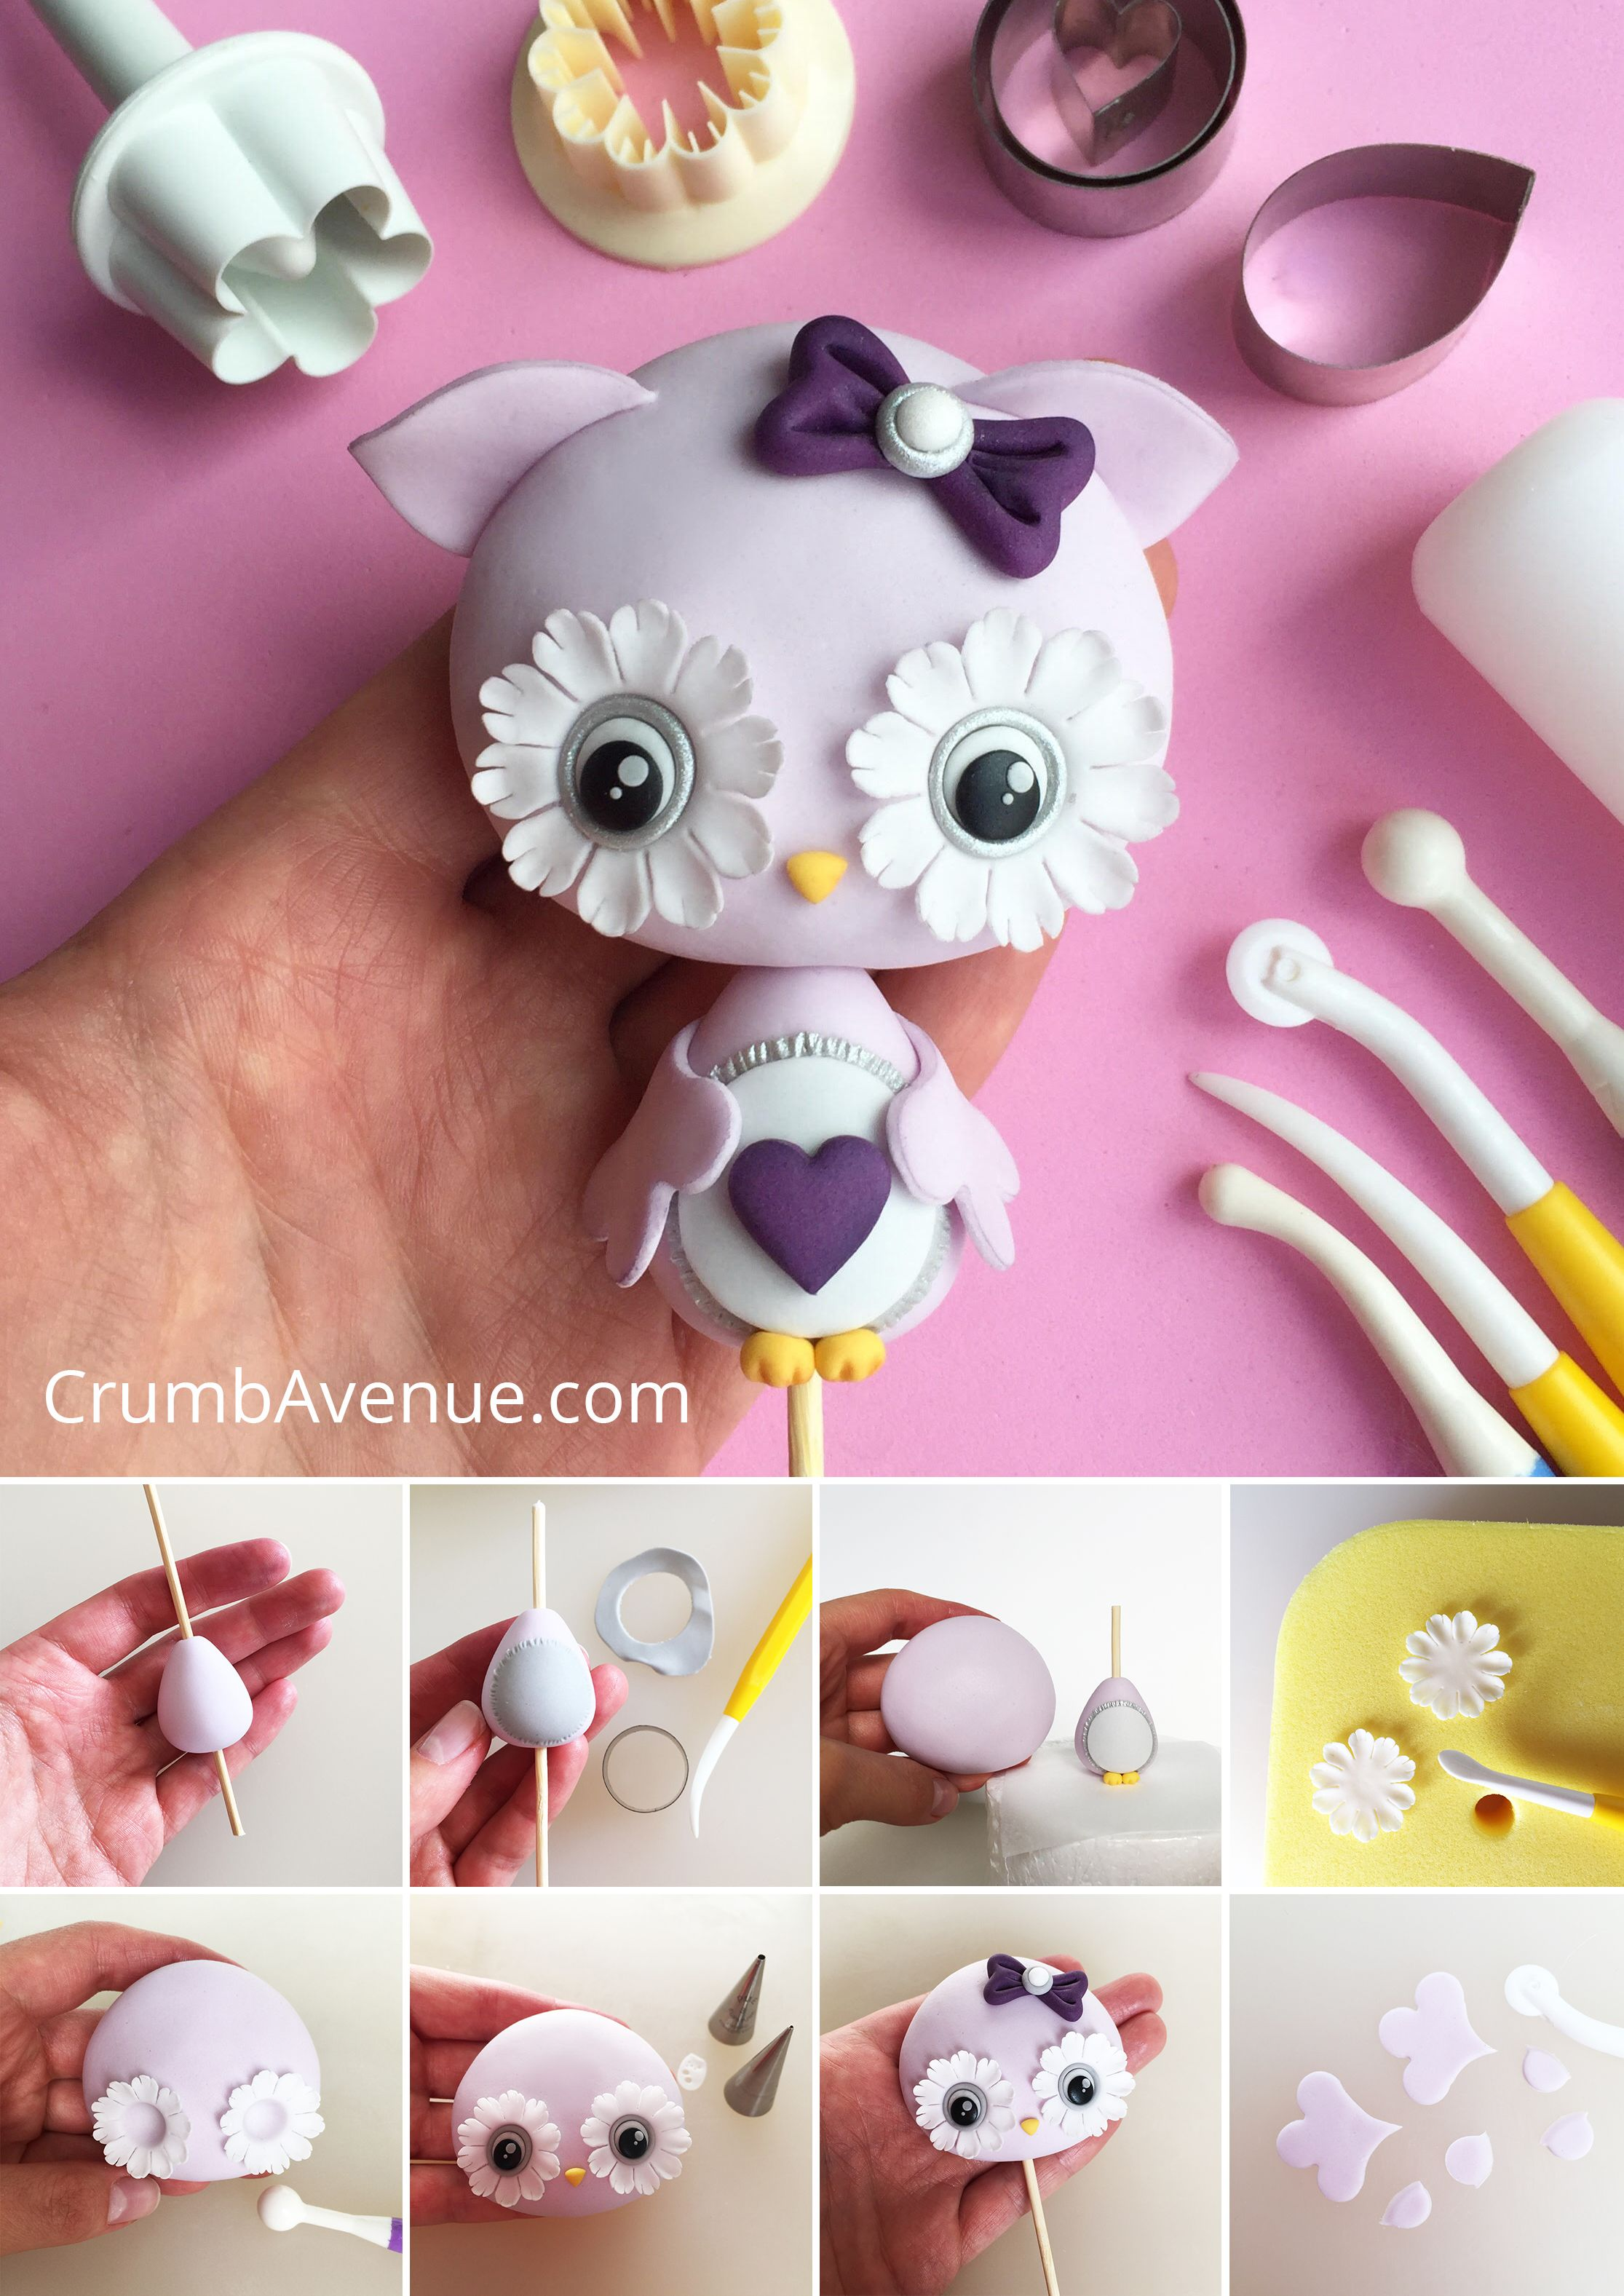 How to weave an owl from gum